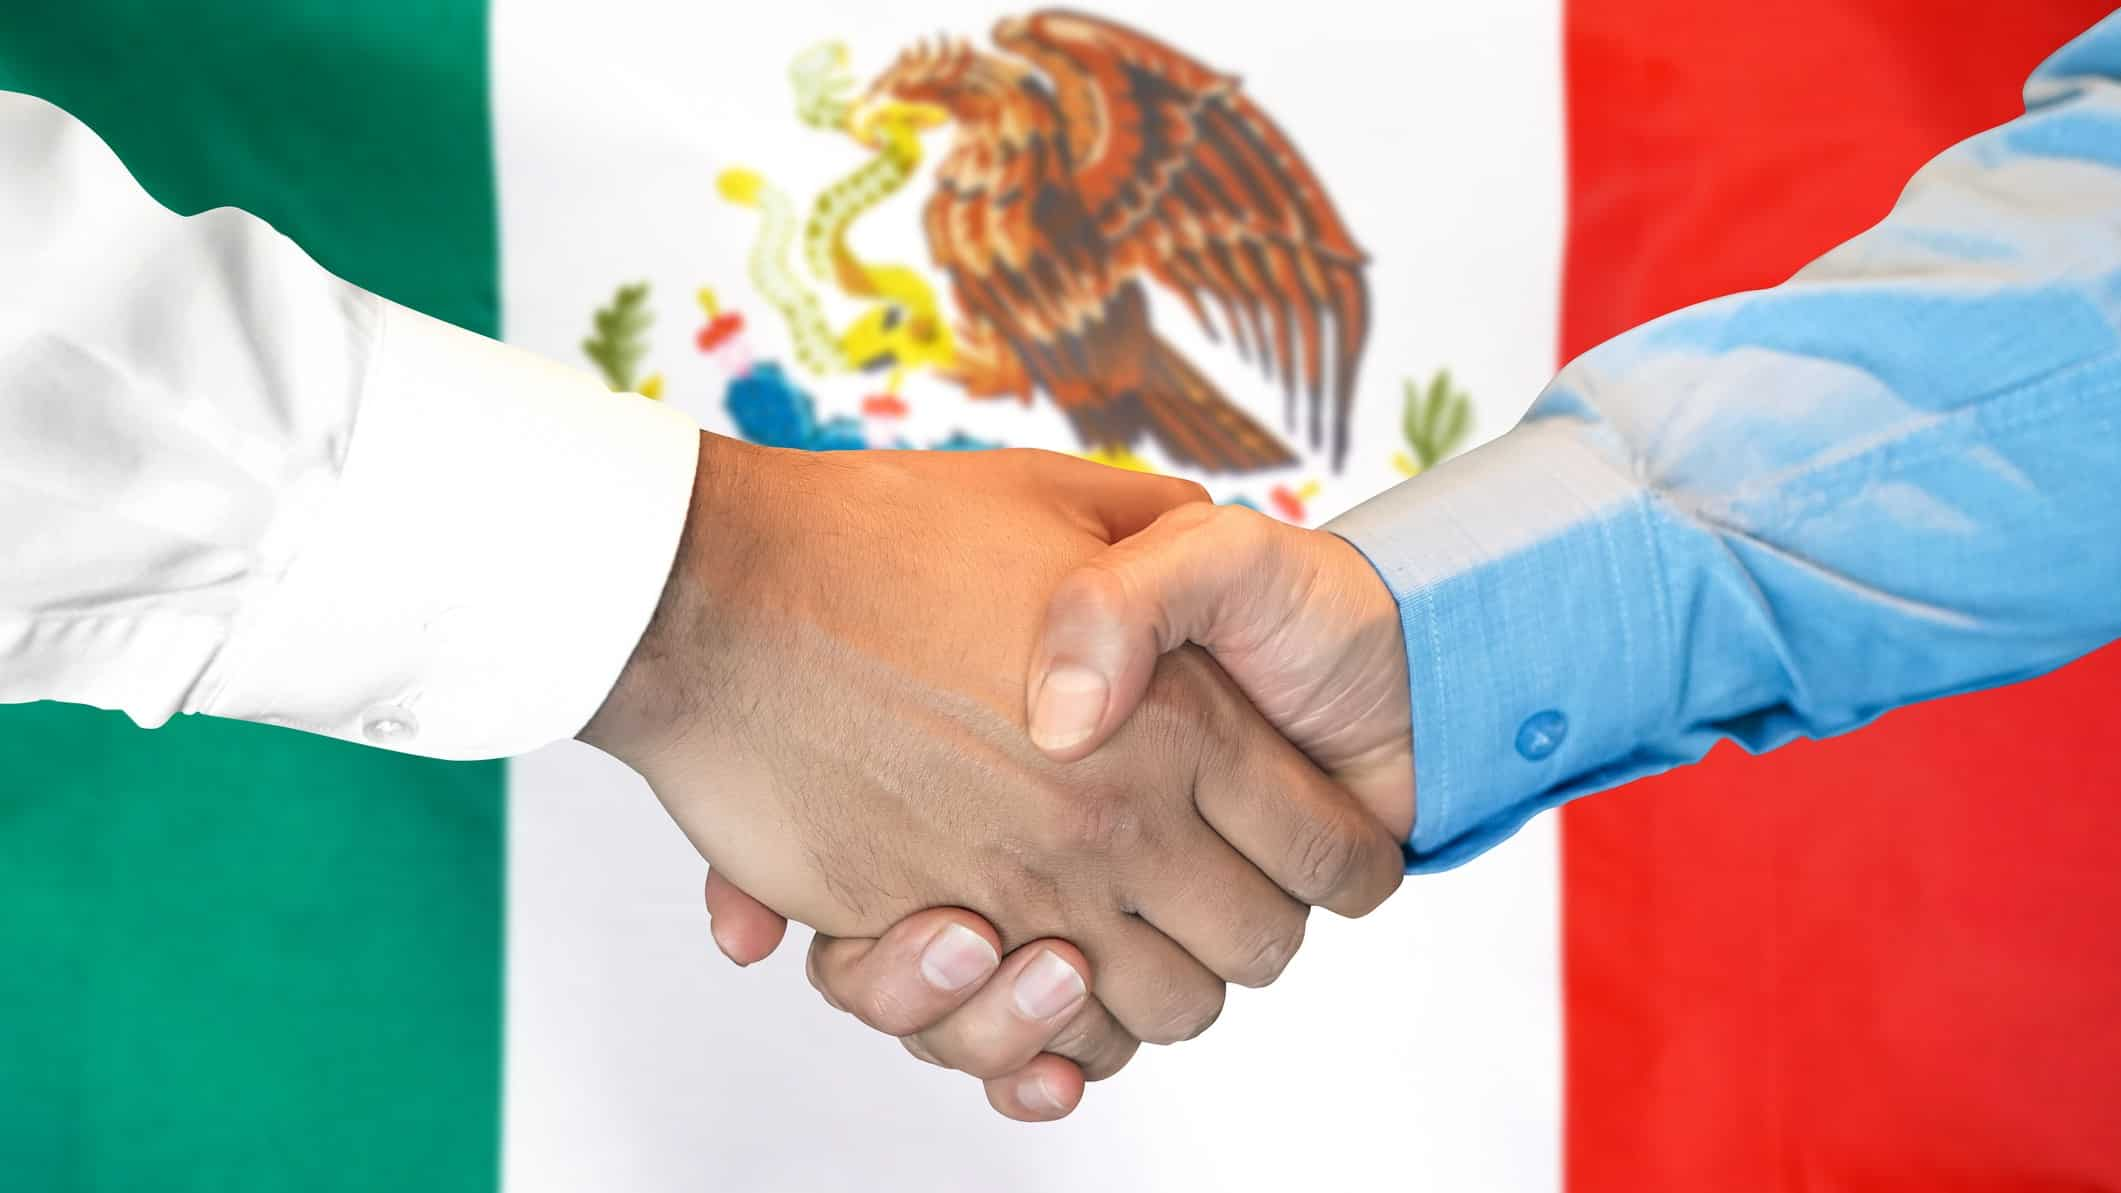 increasing asx share price represented by two hands shaking in front of mexican flag